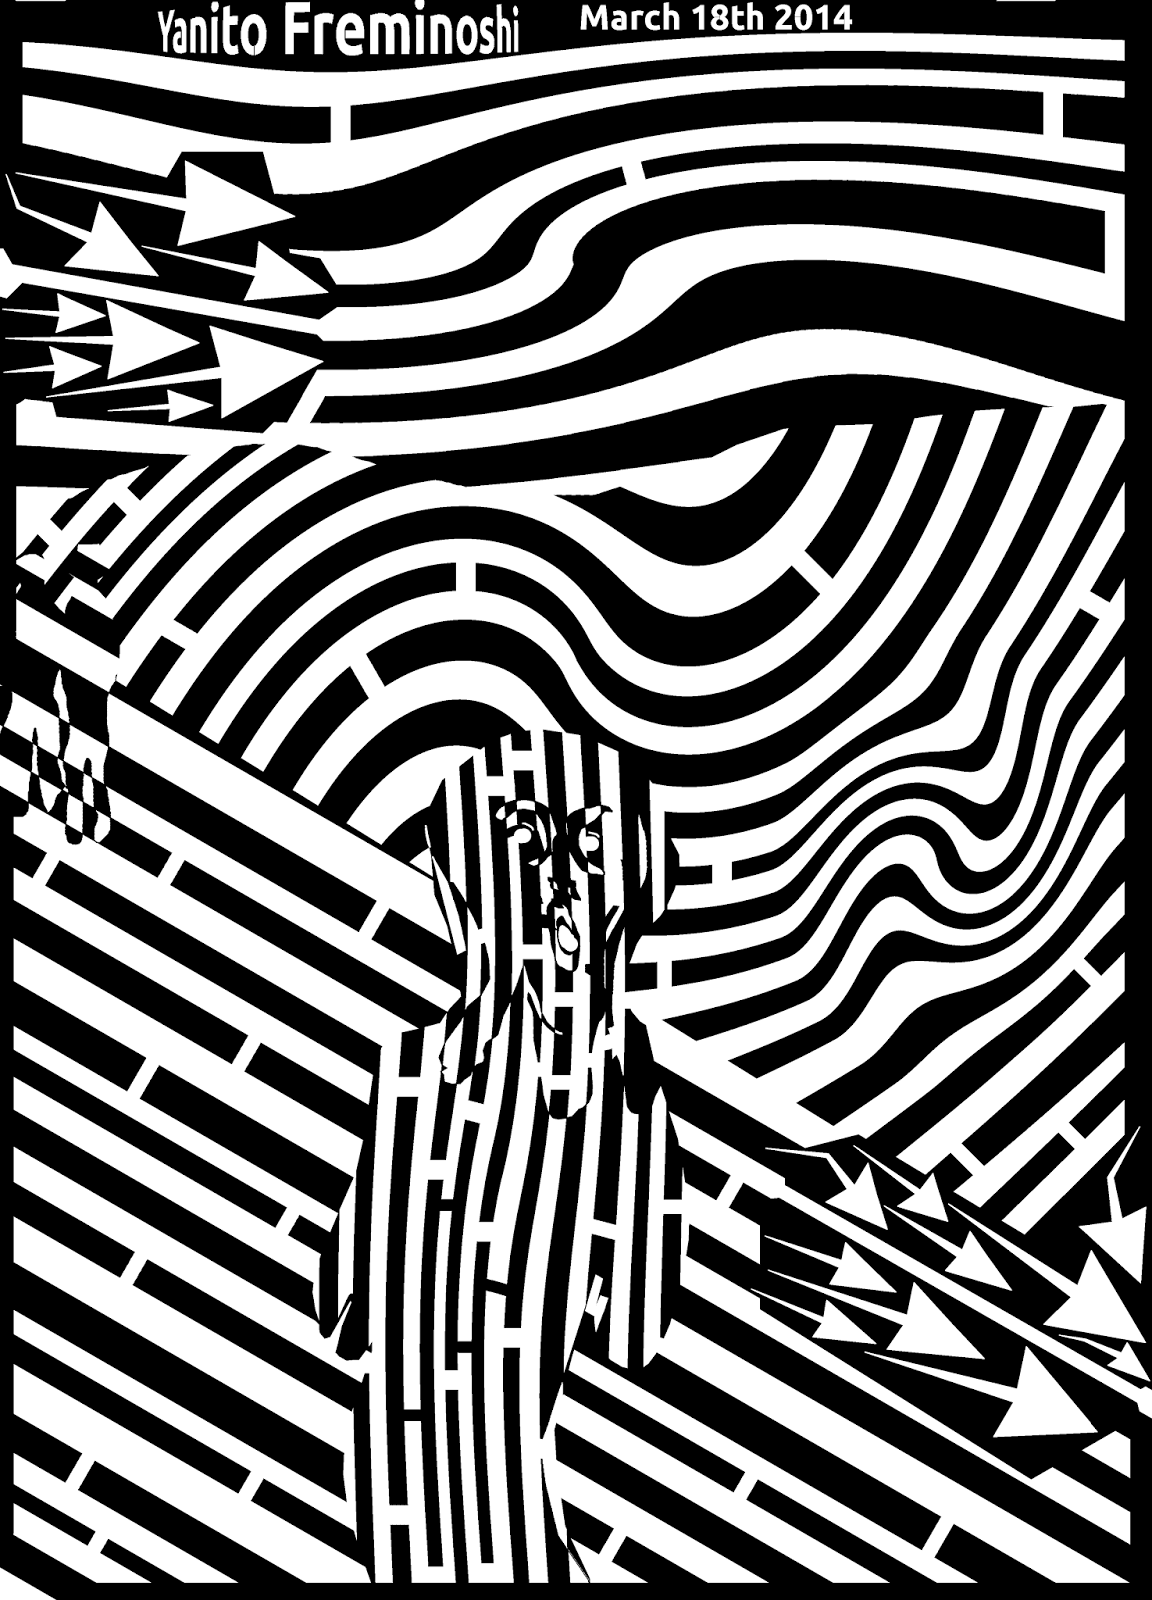 maze scream munch op eye edvard optical painting illusions tangible mazes famous schrei der solution artwork casino yanito catchy march